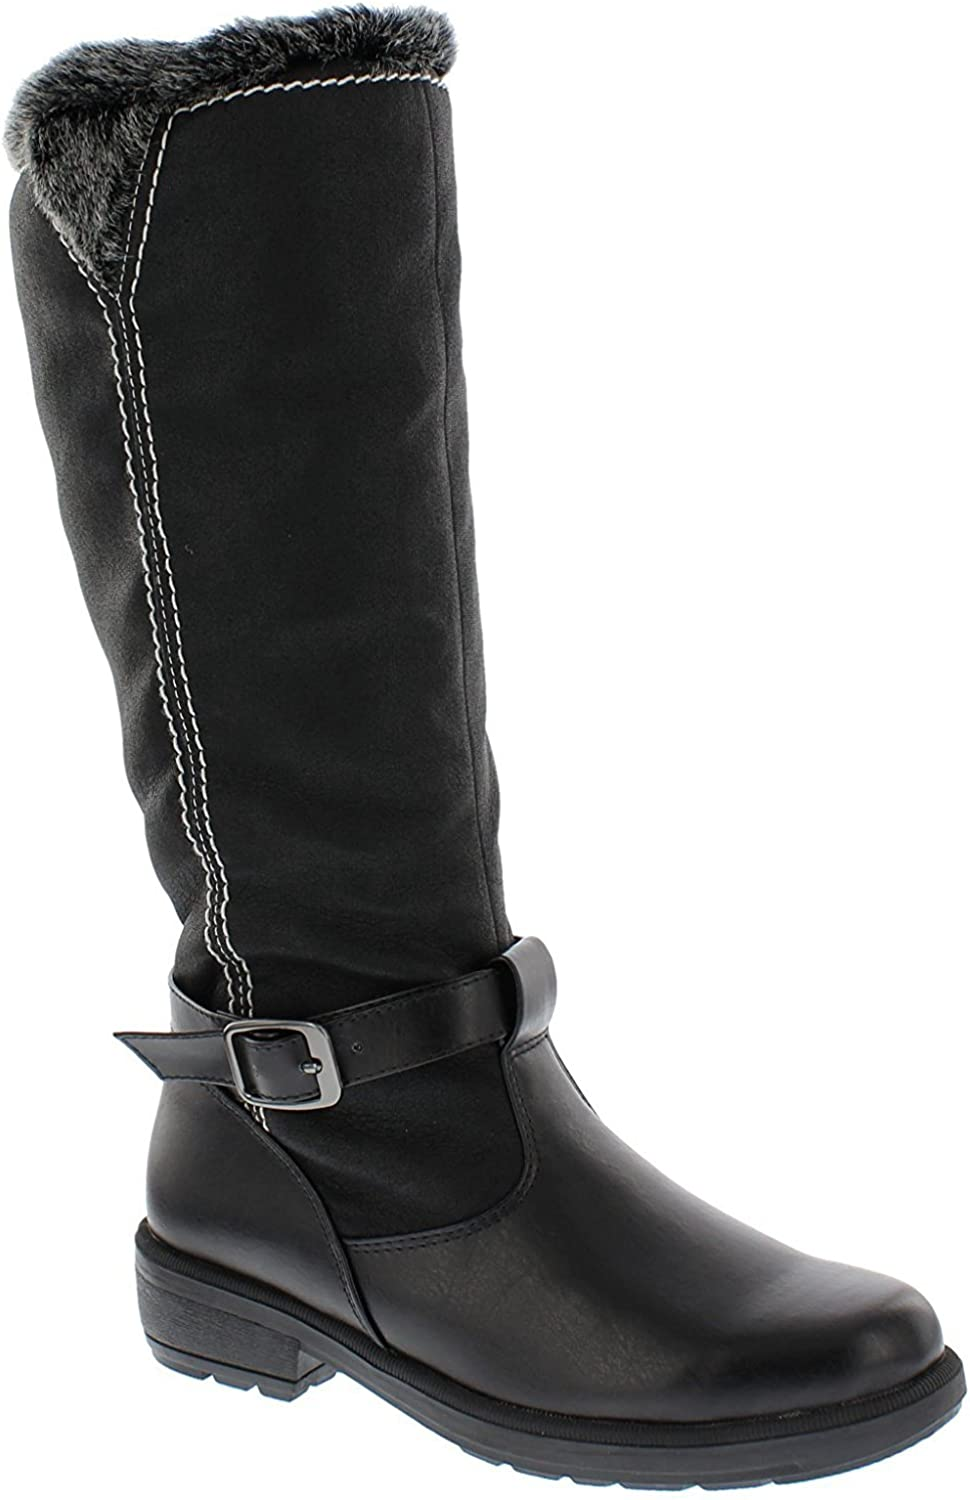 Boston Accents Womens Cold Weather Boots with Side Zipper Closure Patty Waterproof Insulated Tall Winter Boots - Comfortable, Keeps Feet Warm & Dry - Available Both in Medium and Wide Width